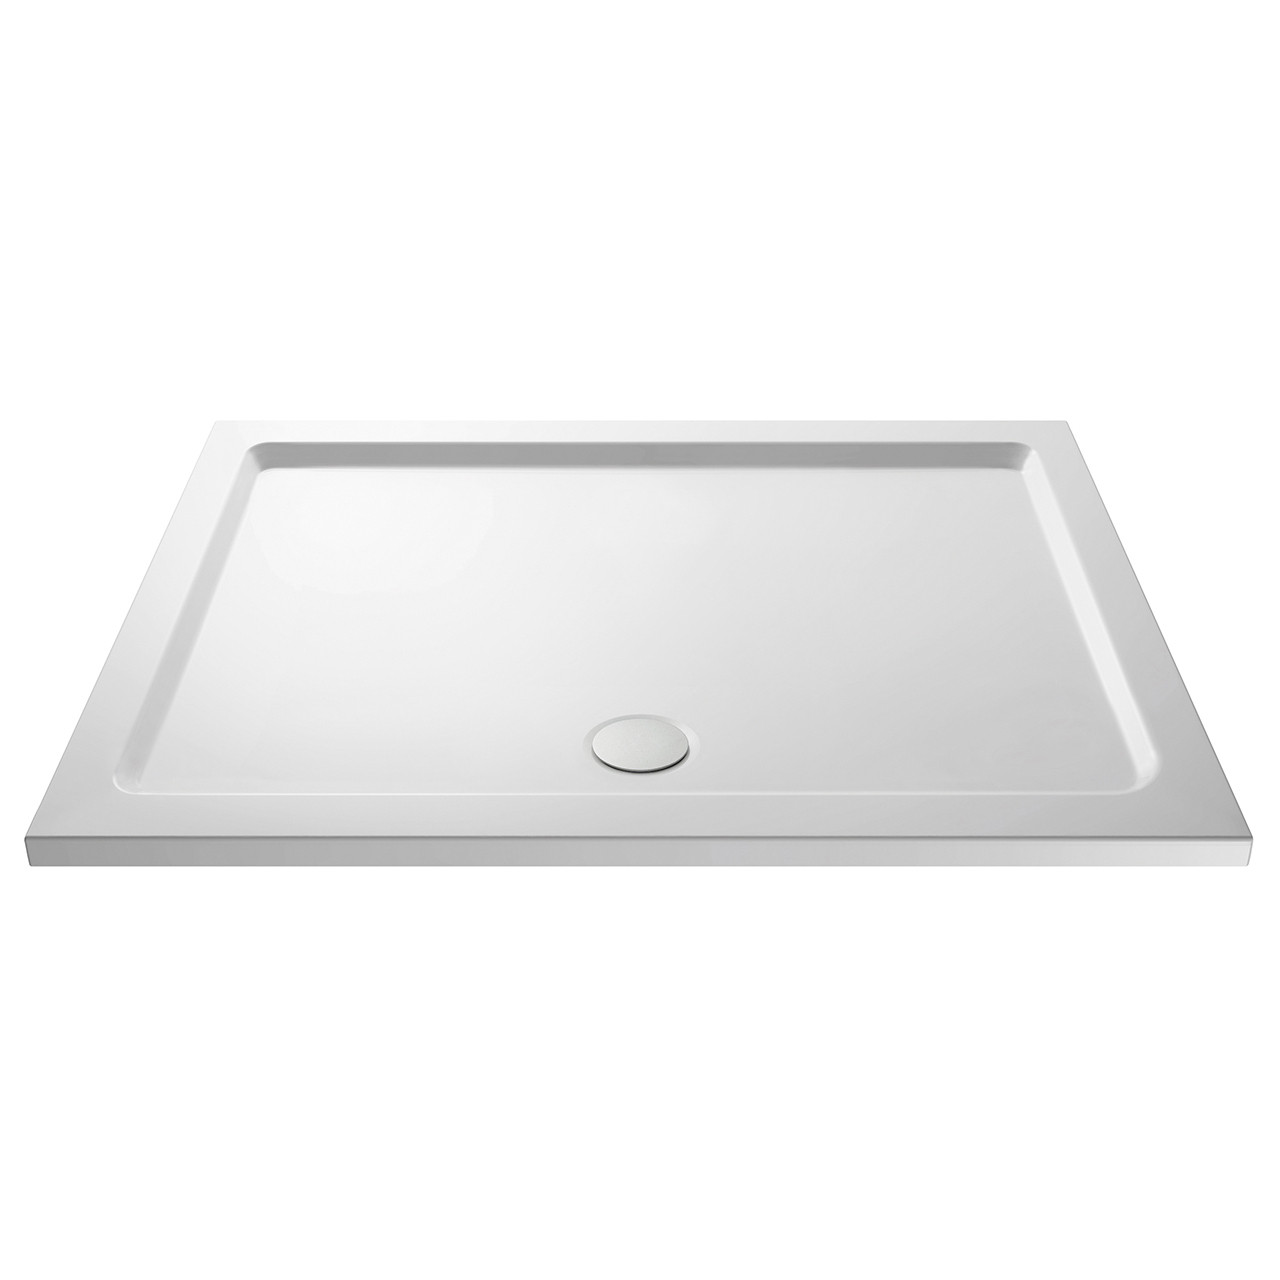 Premiere Pearlstone 1400mm x 700mm x 40mm Rectangular Shower Tray with Centre Waste - NTP031